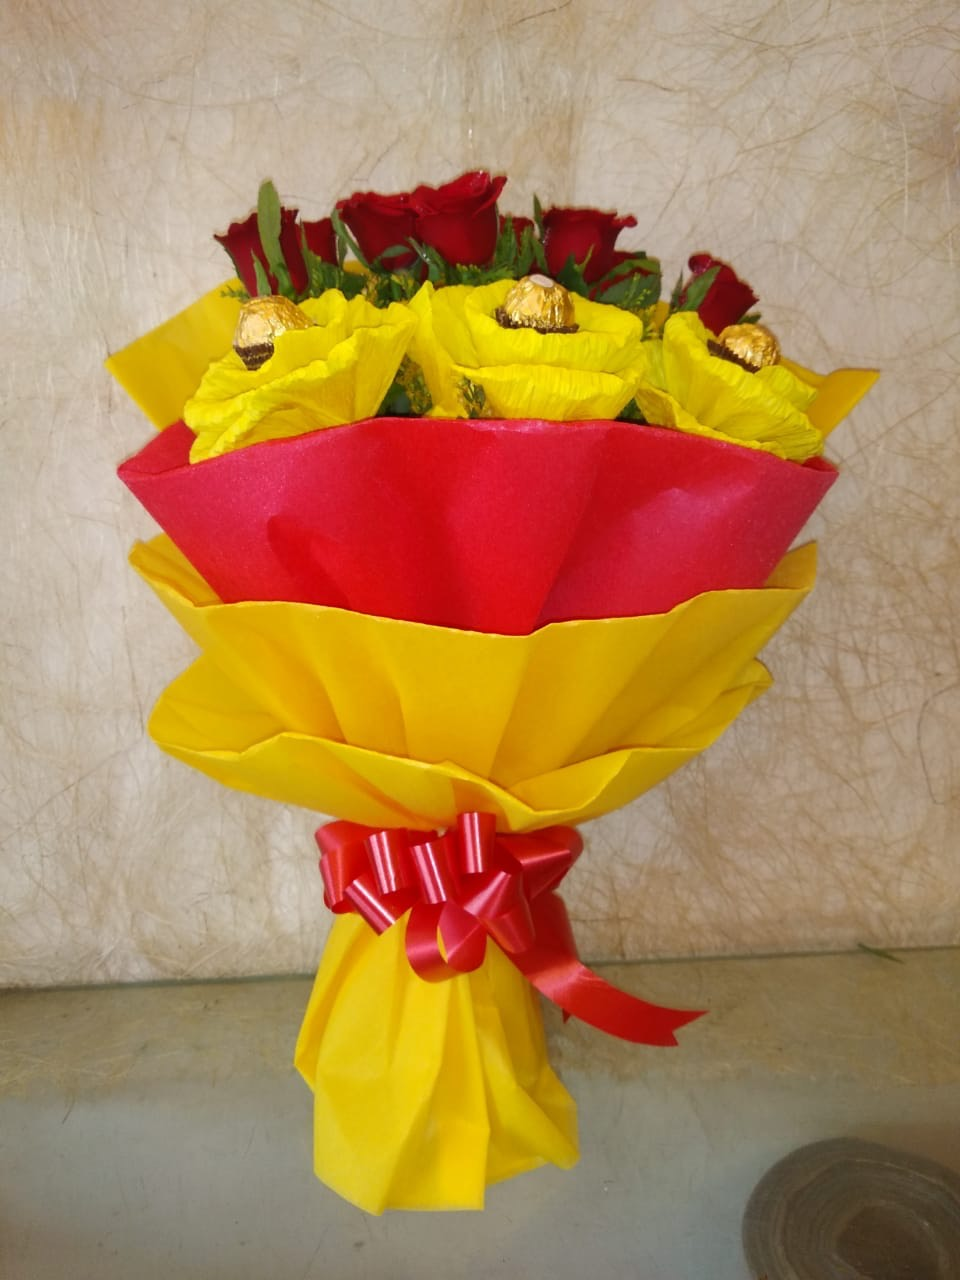 Cake Delivery Patel Nagar South DelhiRed Roses Ferrero Rocher Bunch